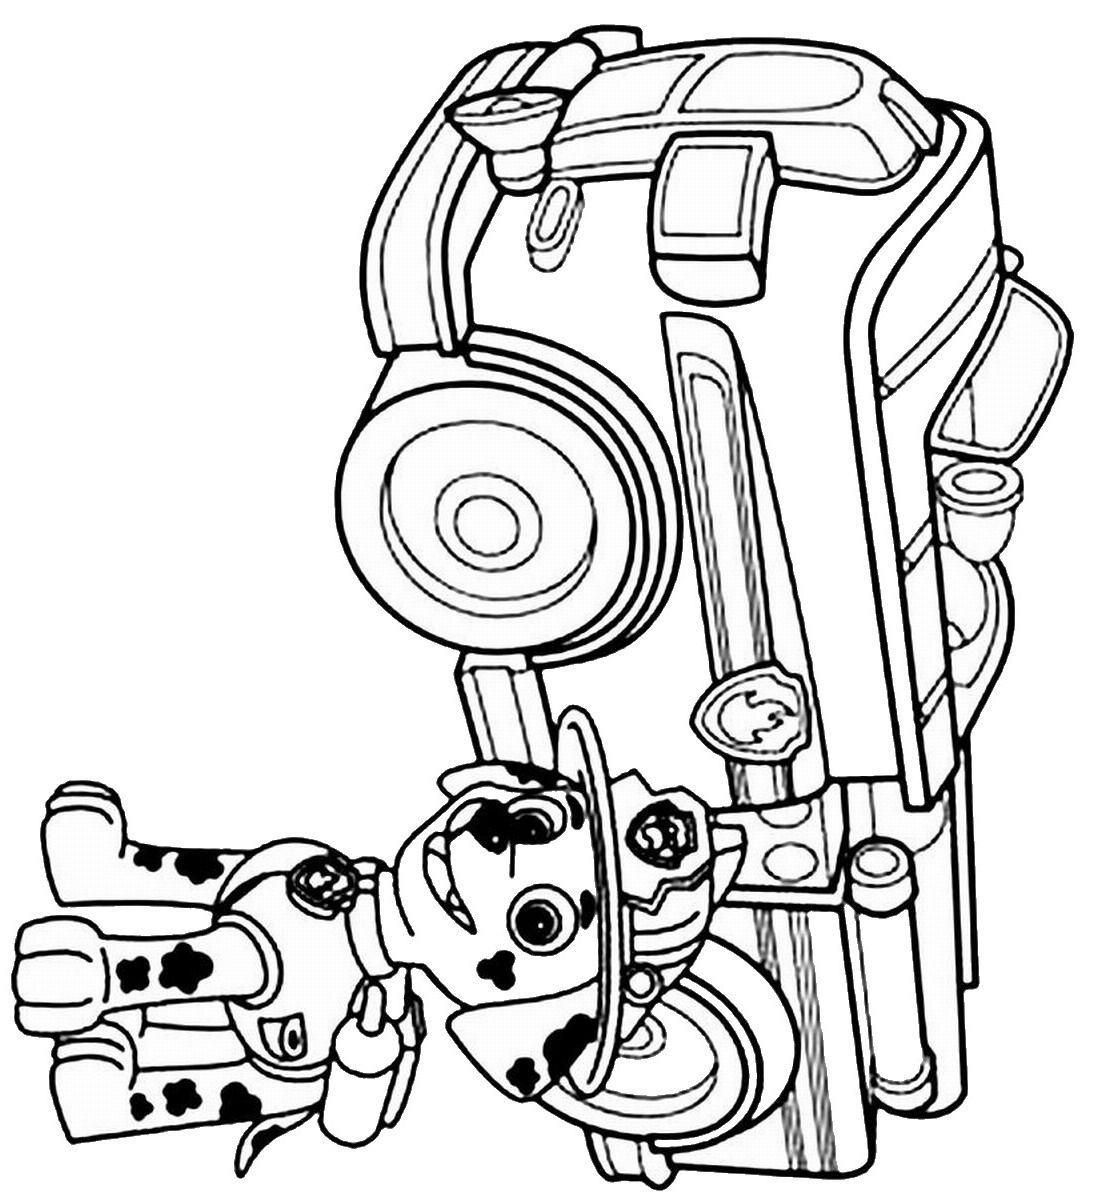 Paw Patrol Coloring Page - Coloring Home